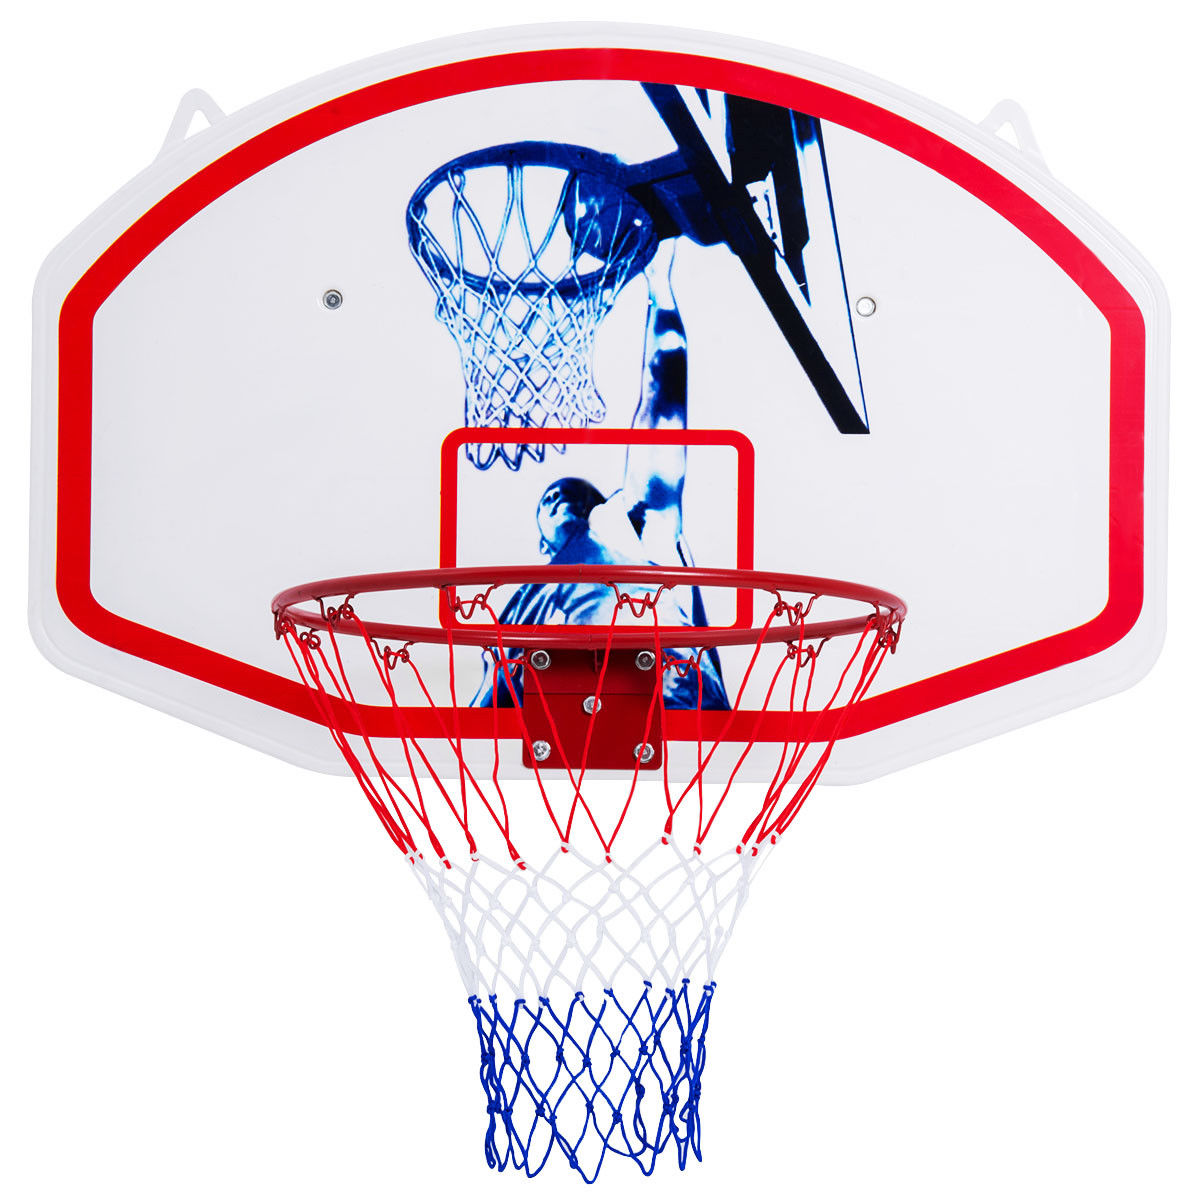 Gymax 35'' x 24'' Wall Mounted Mini Basketball Hoop Backboard & Rim Combo Indoor Sports